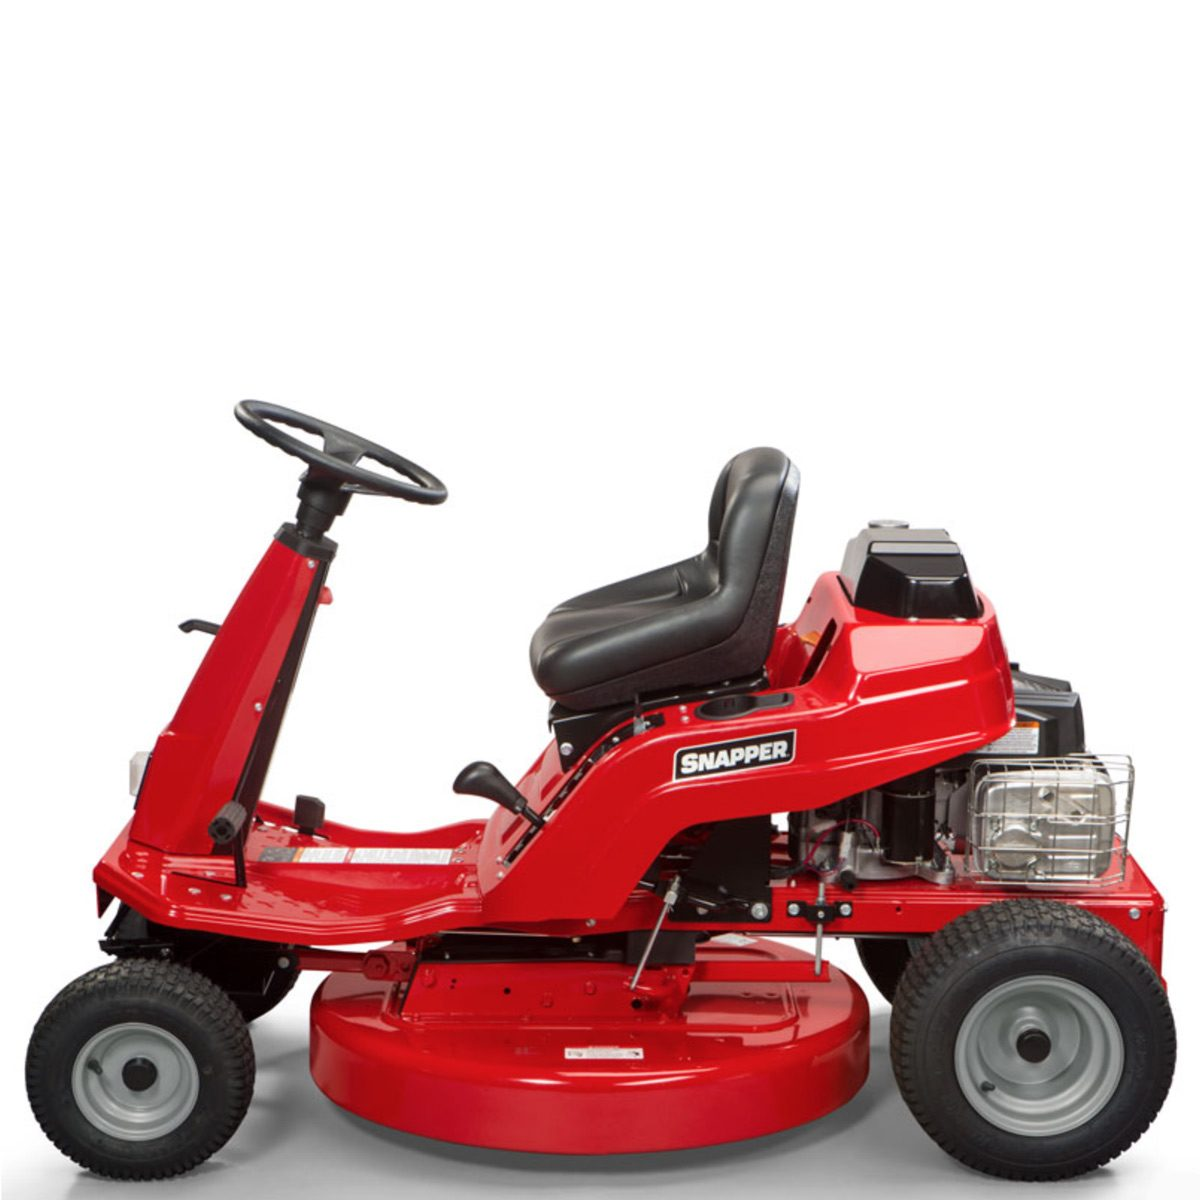 Snapper HI-VAC Mower Deck